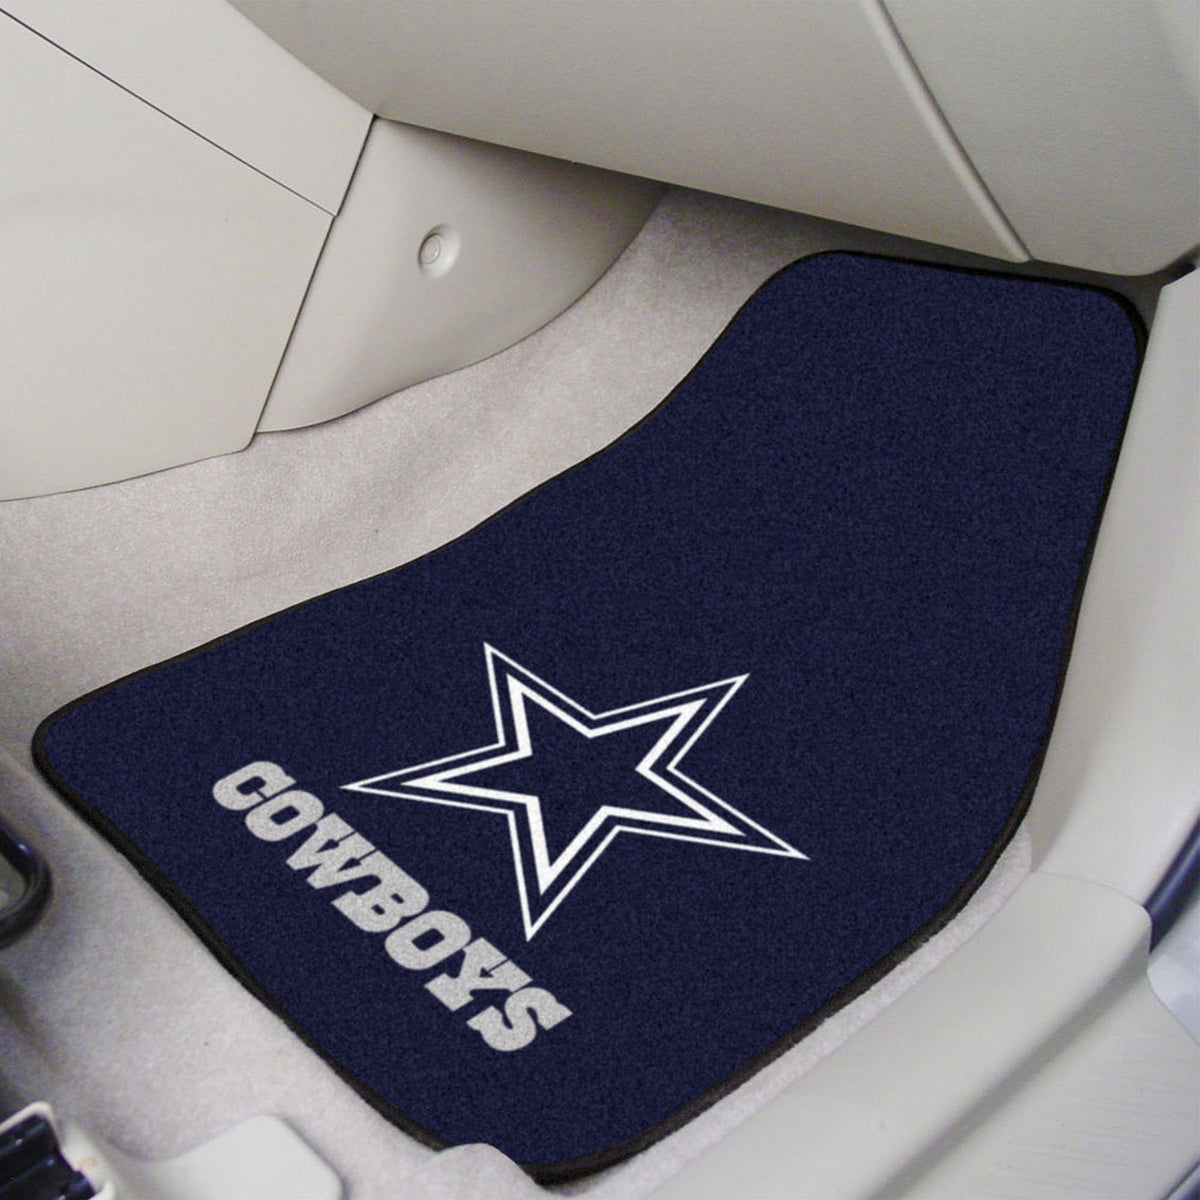 "NFL - 2-pc Carpet Car Mat Set, 17"" x 27"" NFL Mats, Front Car Mats, 2-pc Carpet Car Mat Set, NFL, Auto Fan Mats Dallas Cowboys"